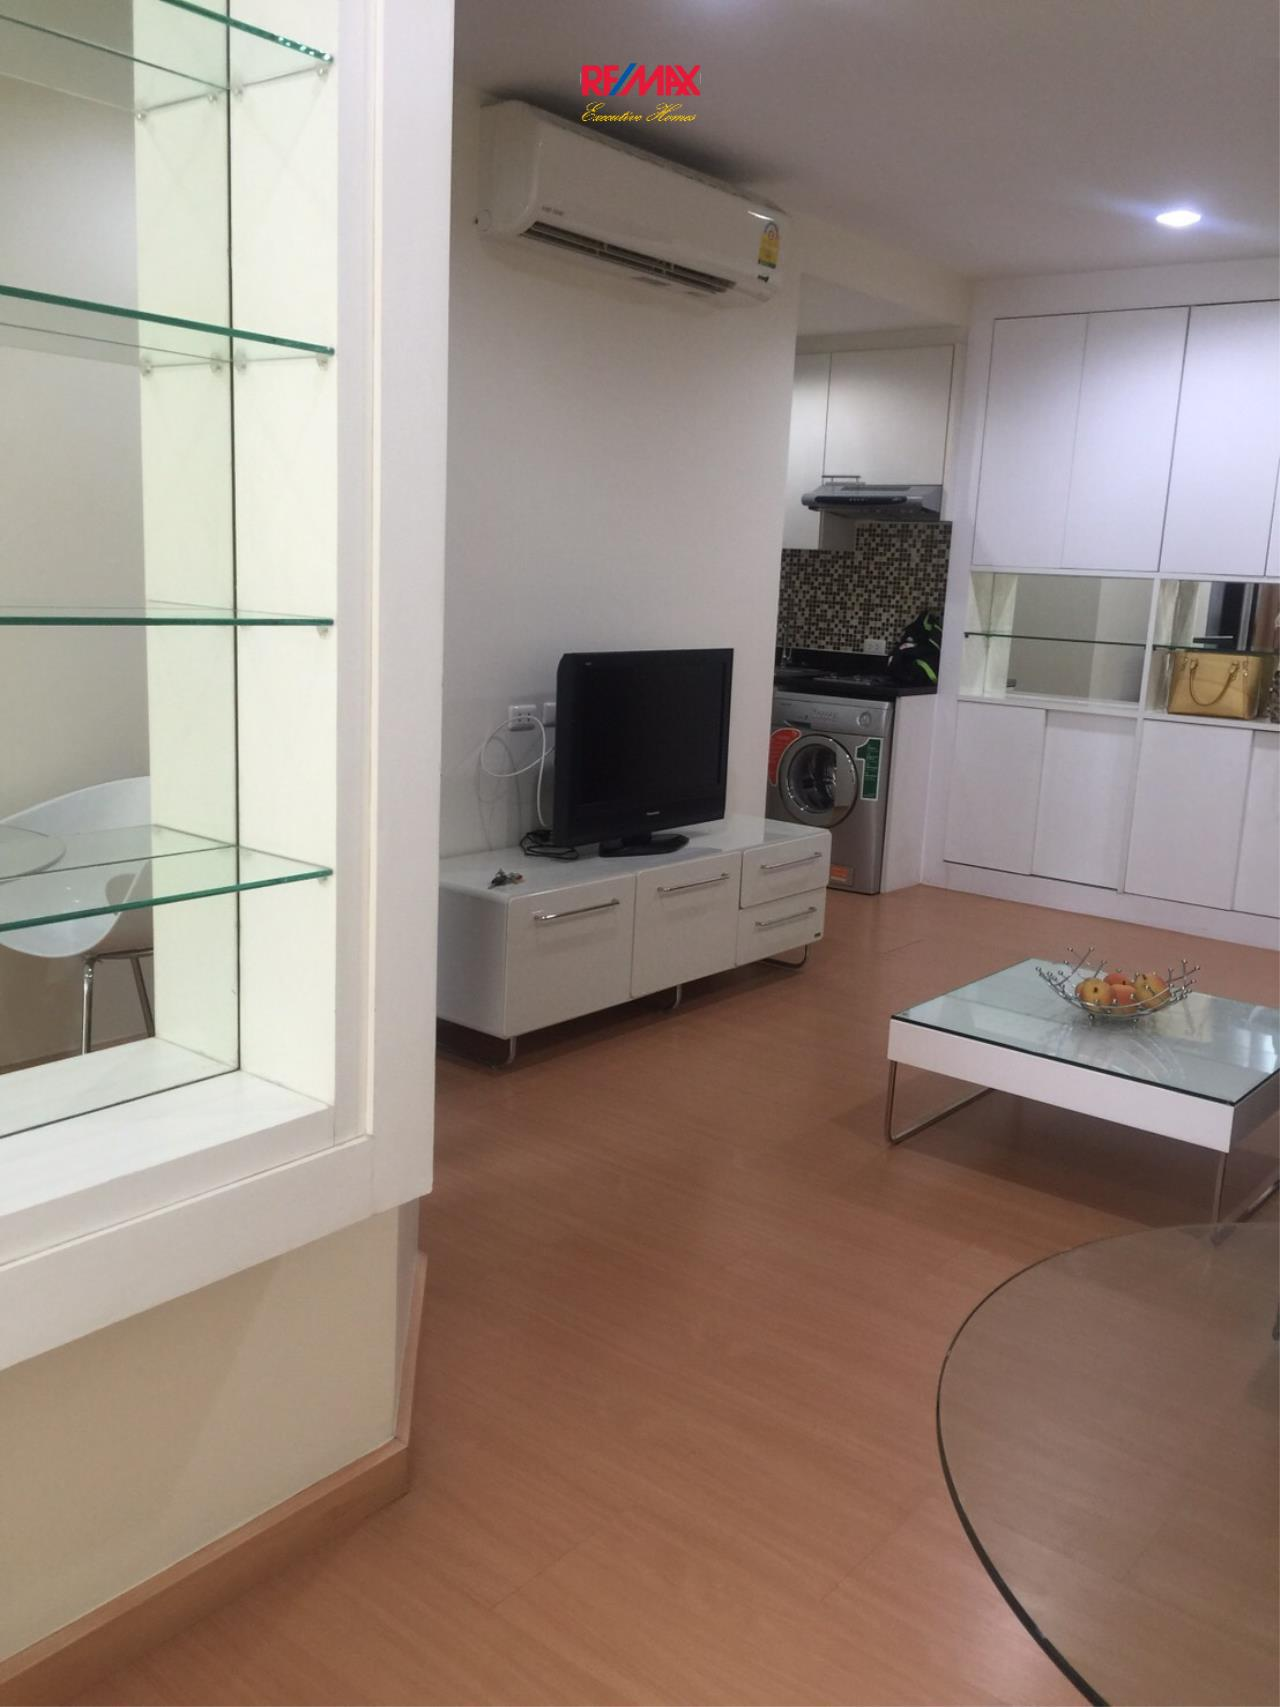 RE/MAX Executive Homes Agency's Nice 1 Bedroom for Rent and Sale Address Sukhumvit 42 4